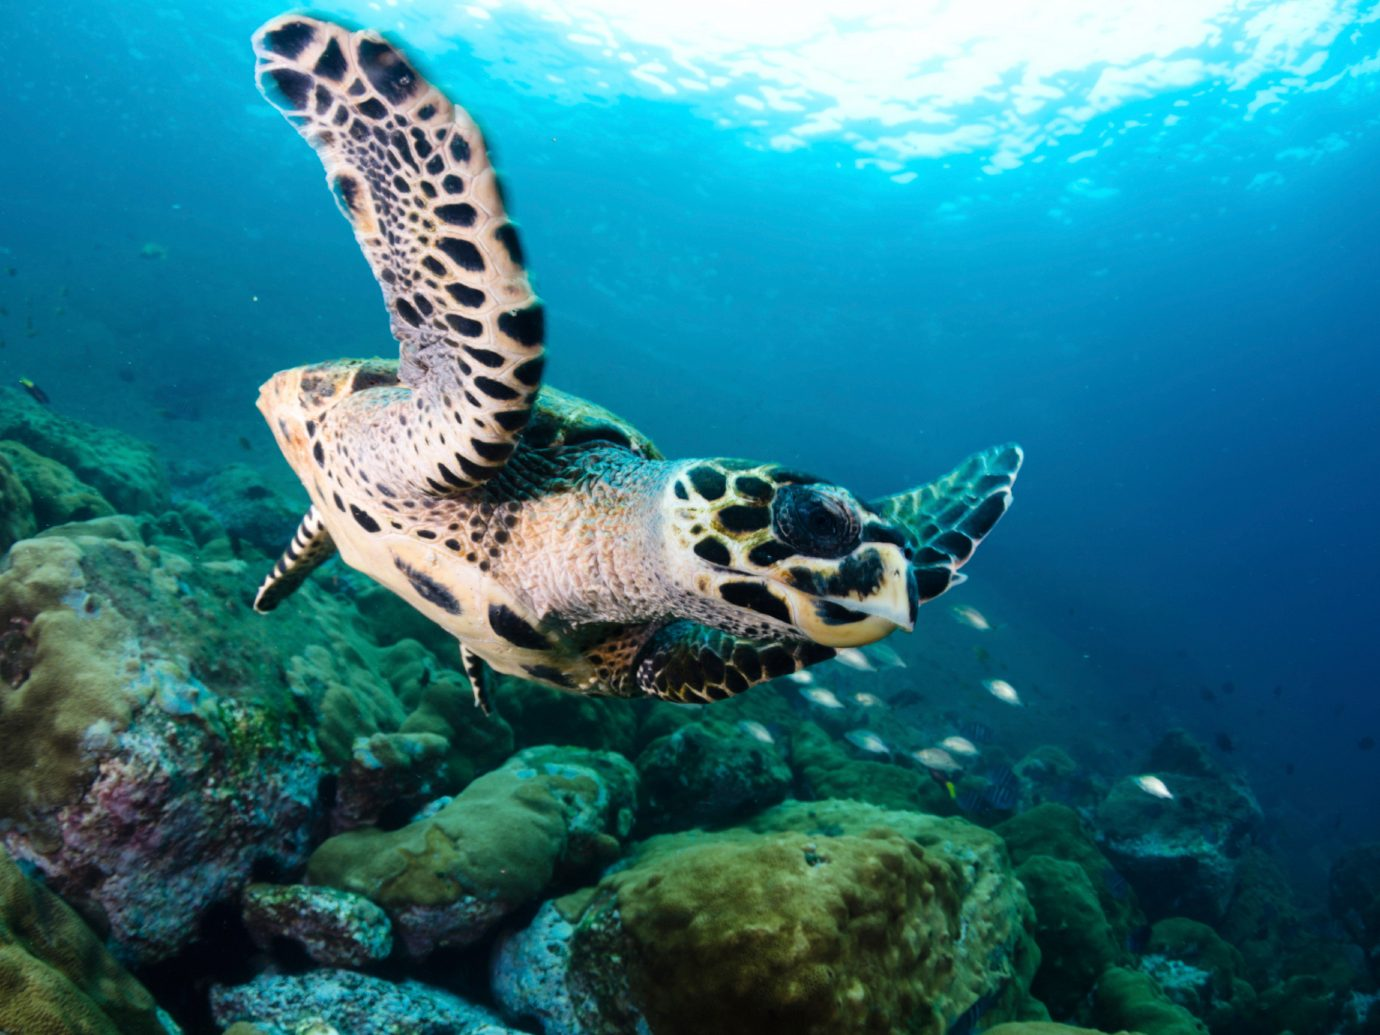 Trip Ideas reptile turtle marine biology underwater reef coral reef sea turtle biology Sea rock Ocean loggerhead diving fish coral reef fish water sport ocean floor